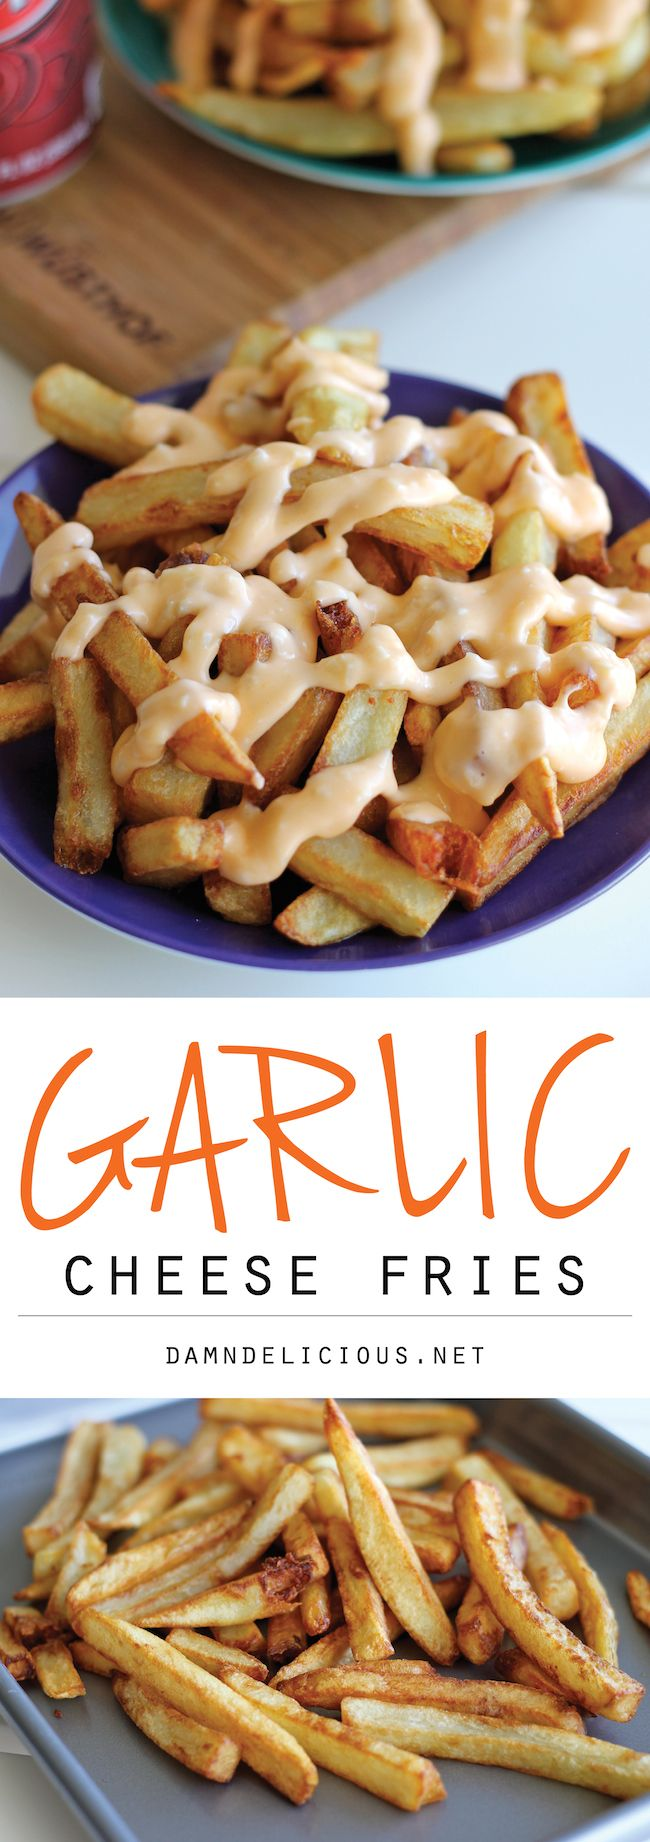 Garlic Cheese Fries - Perfectly double-fried french fries smothered in ...